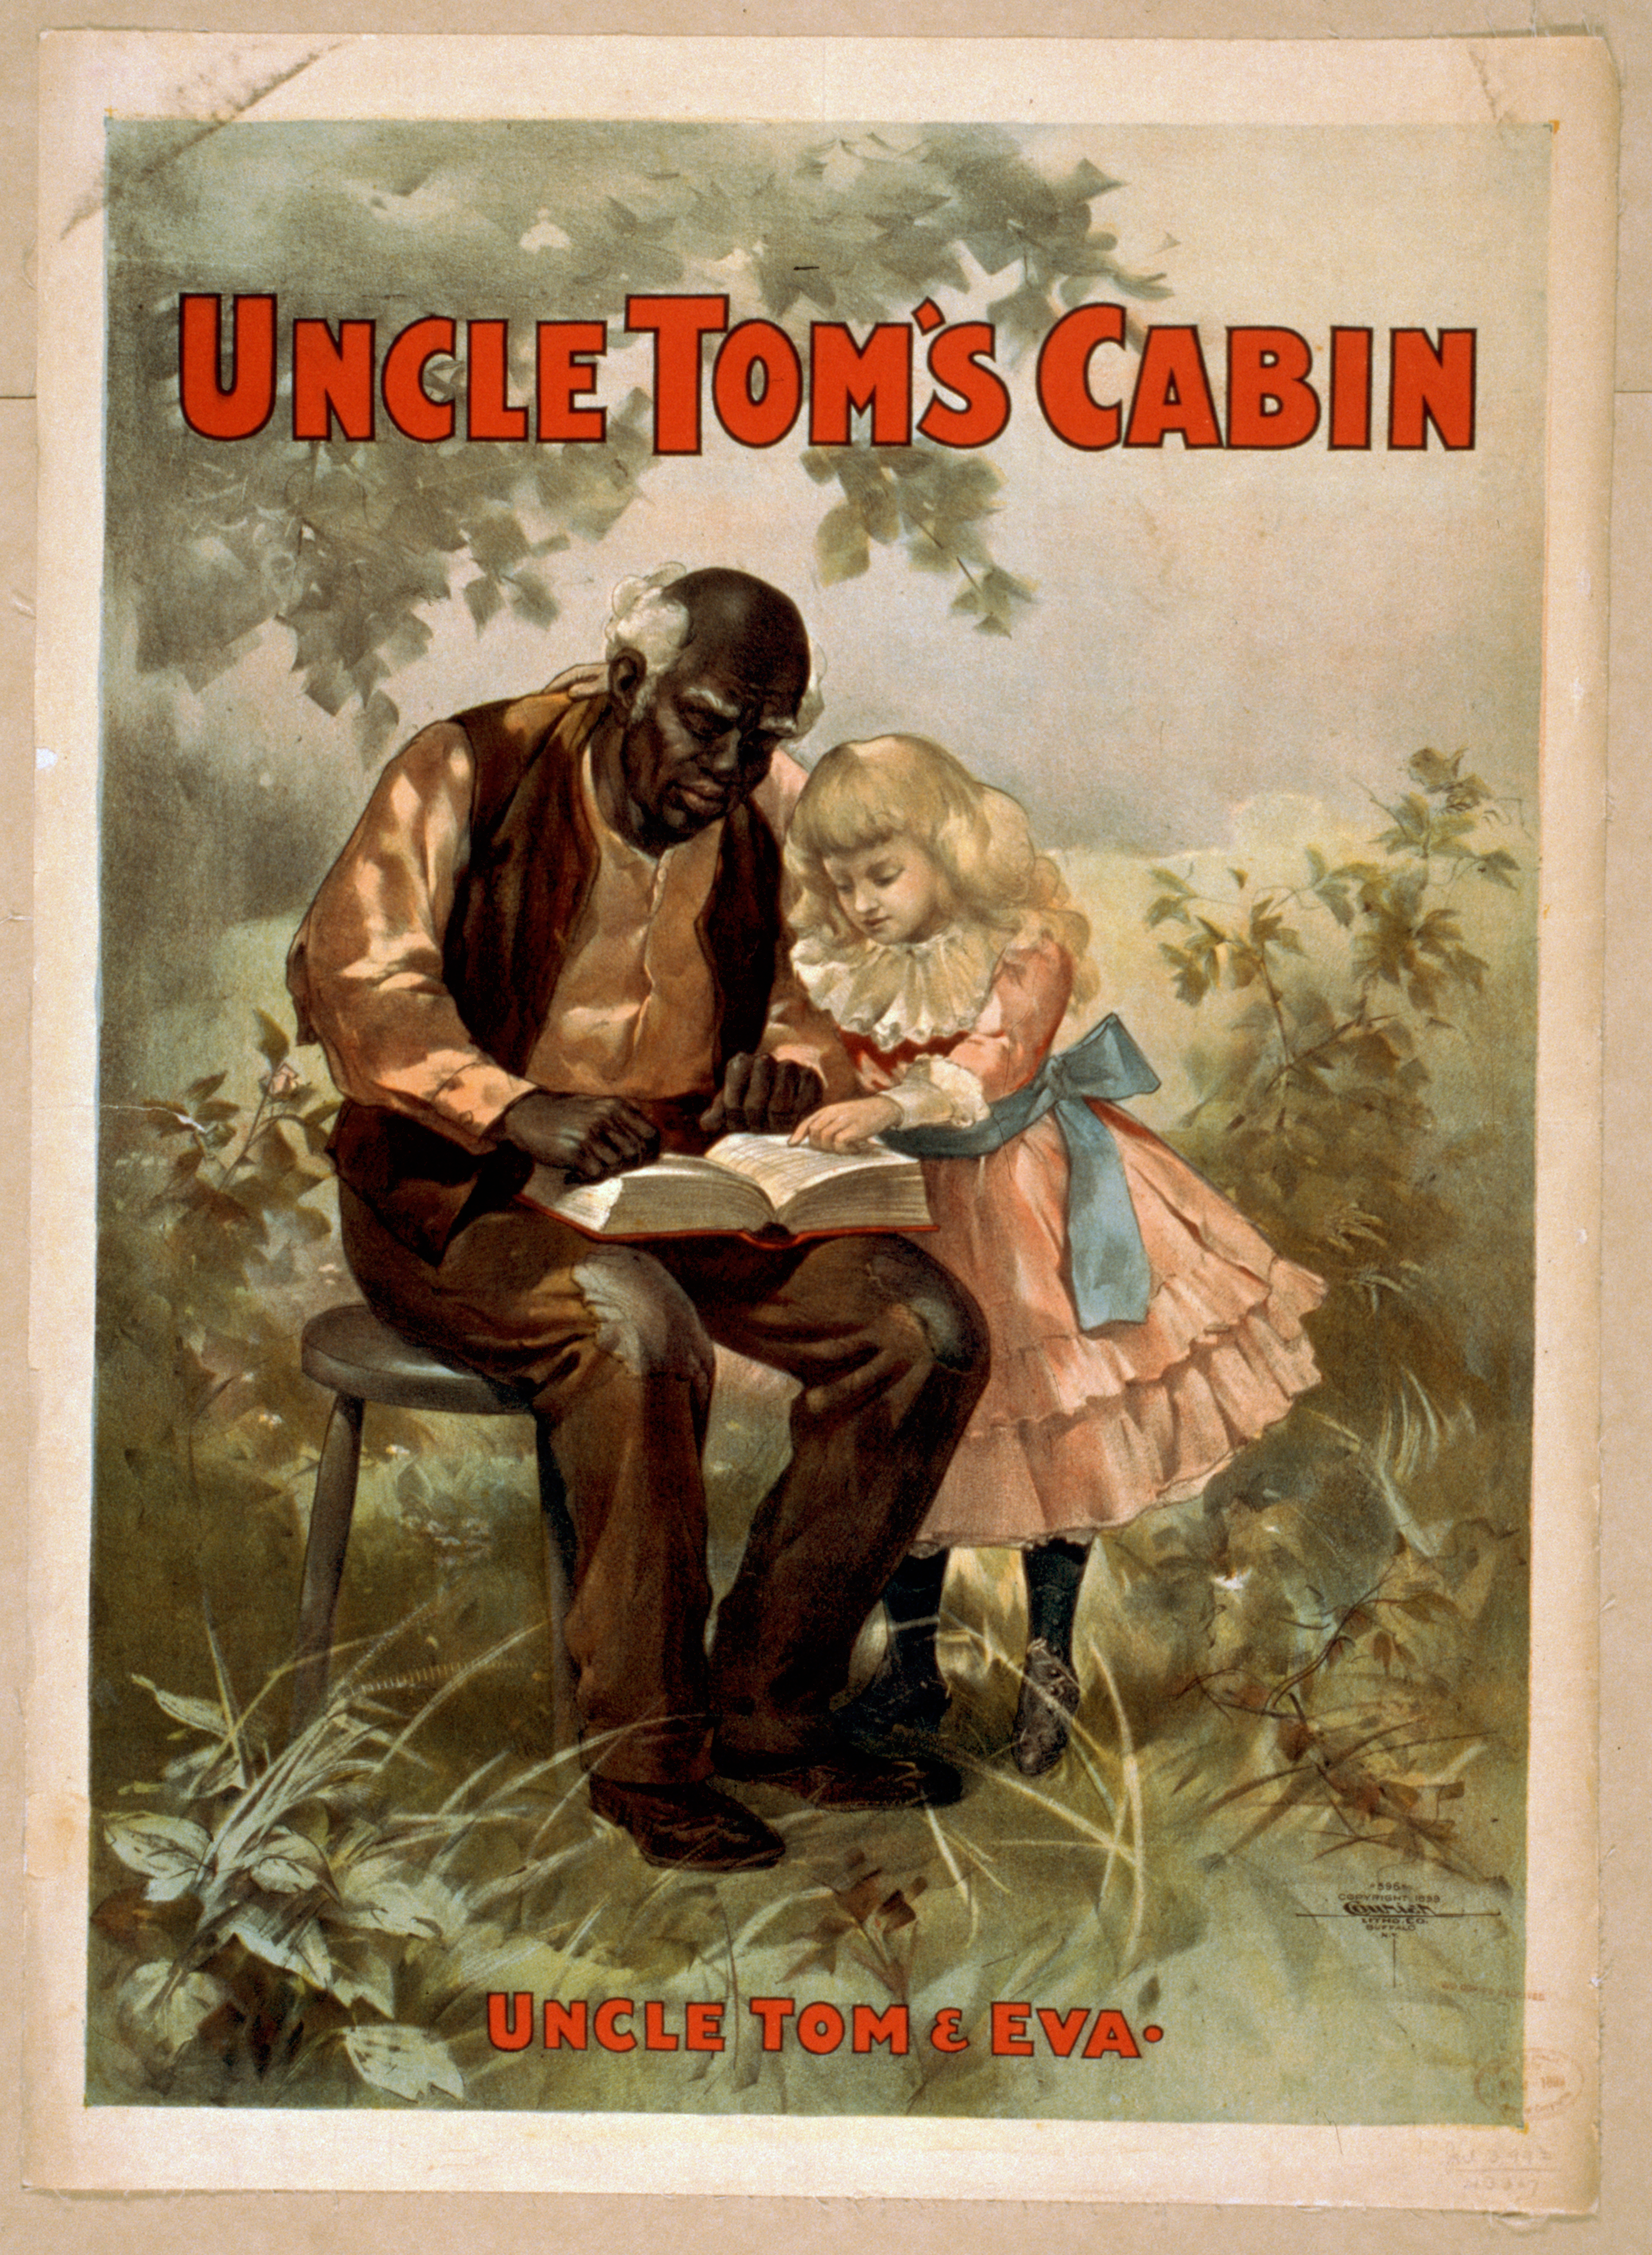 uncle tom s cabin free images at clkercom vector clip